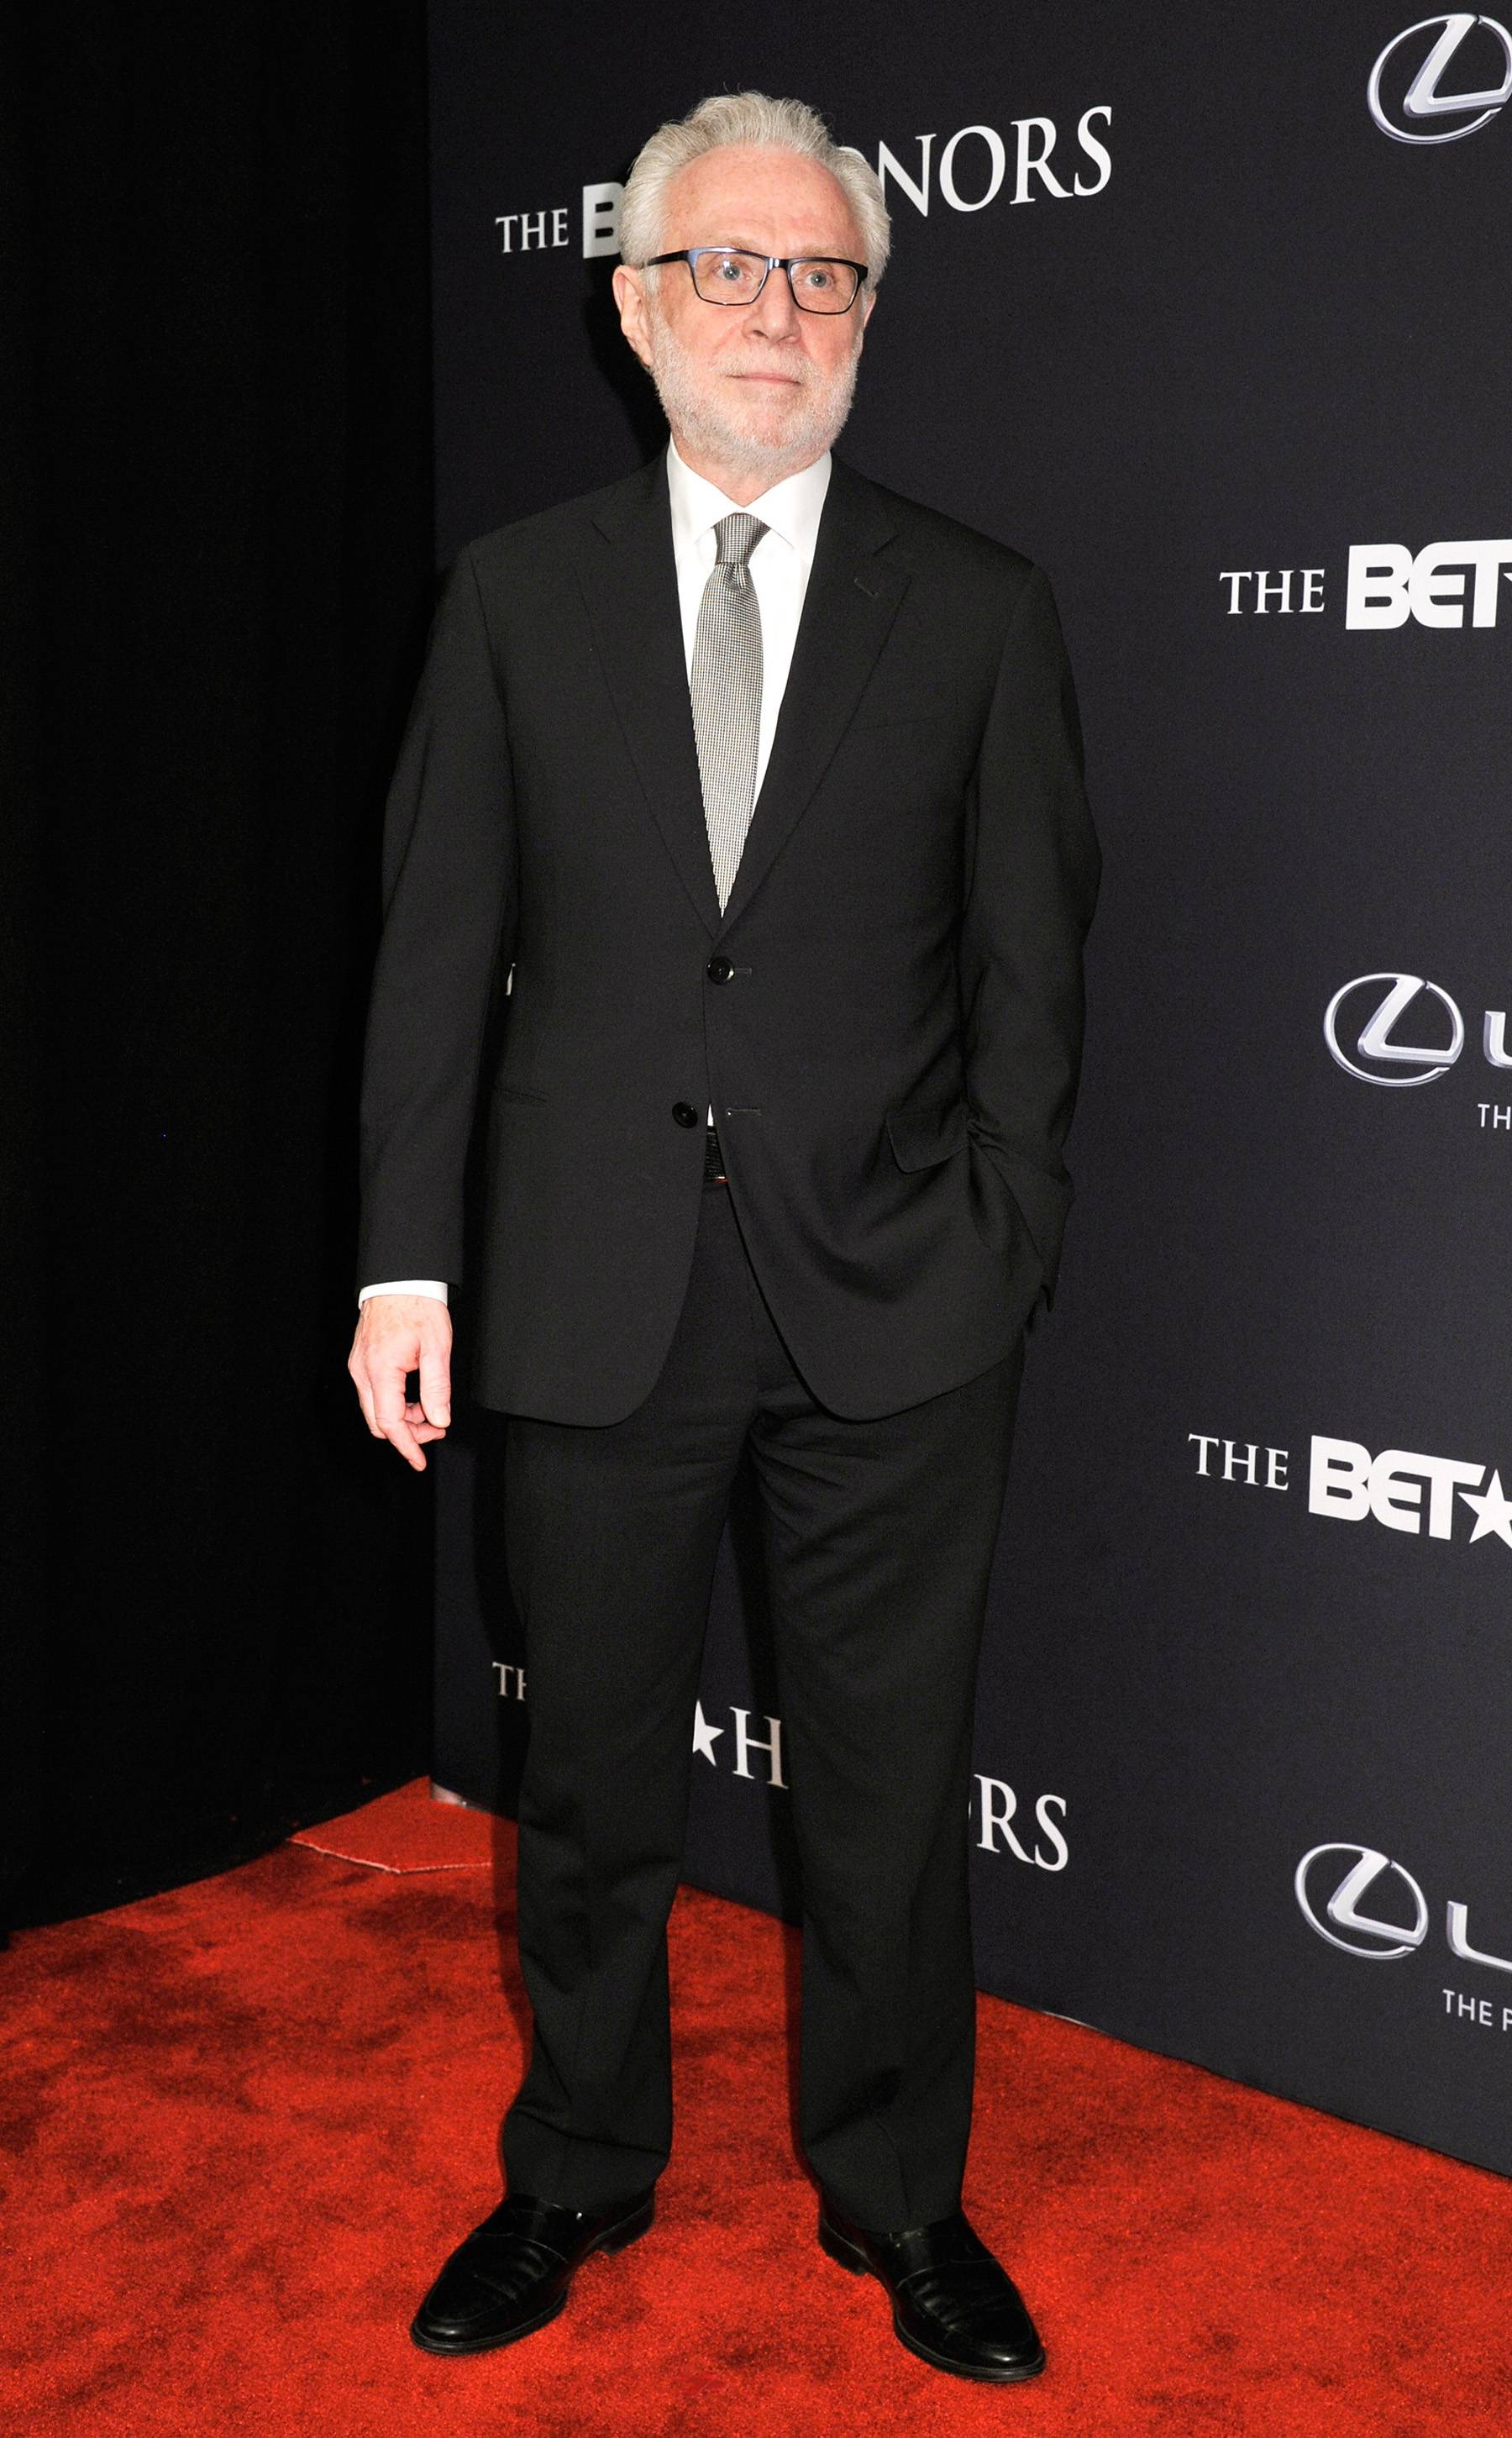 Newsworthy - What's the news on the carpet? Journalist Wolf Blitzer hits the carpet looking sharp as usual. (Photo: Kris Connor/BET/Getty Images for BET)